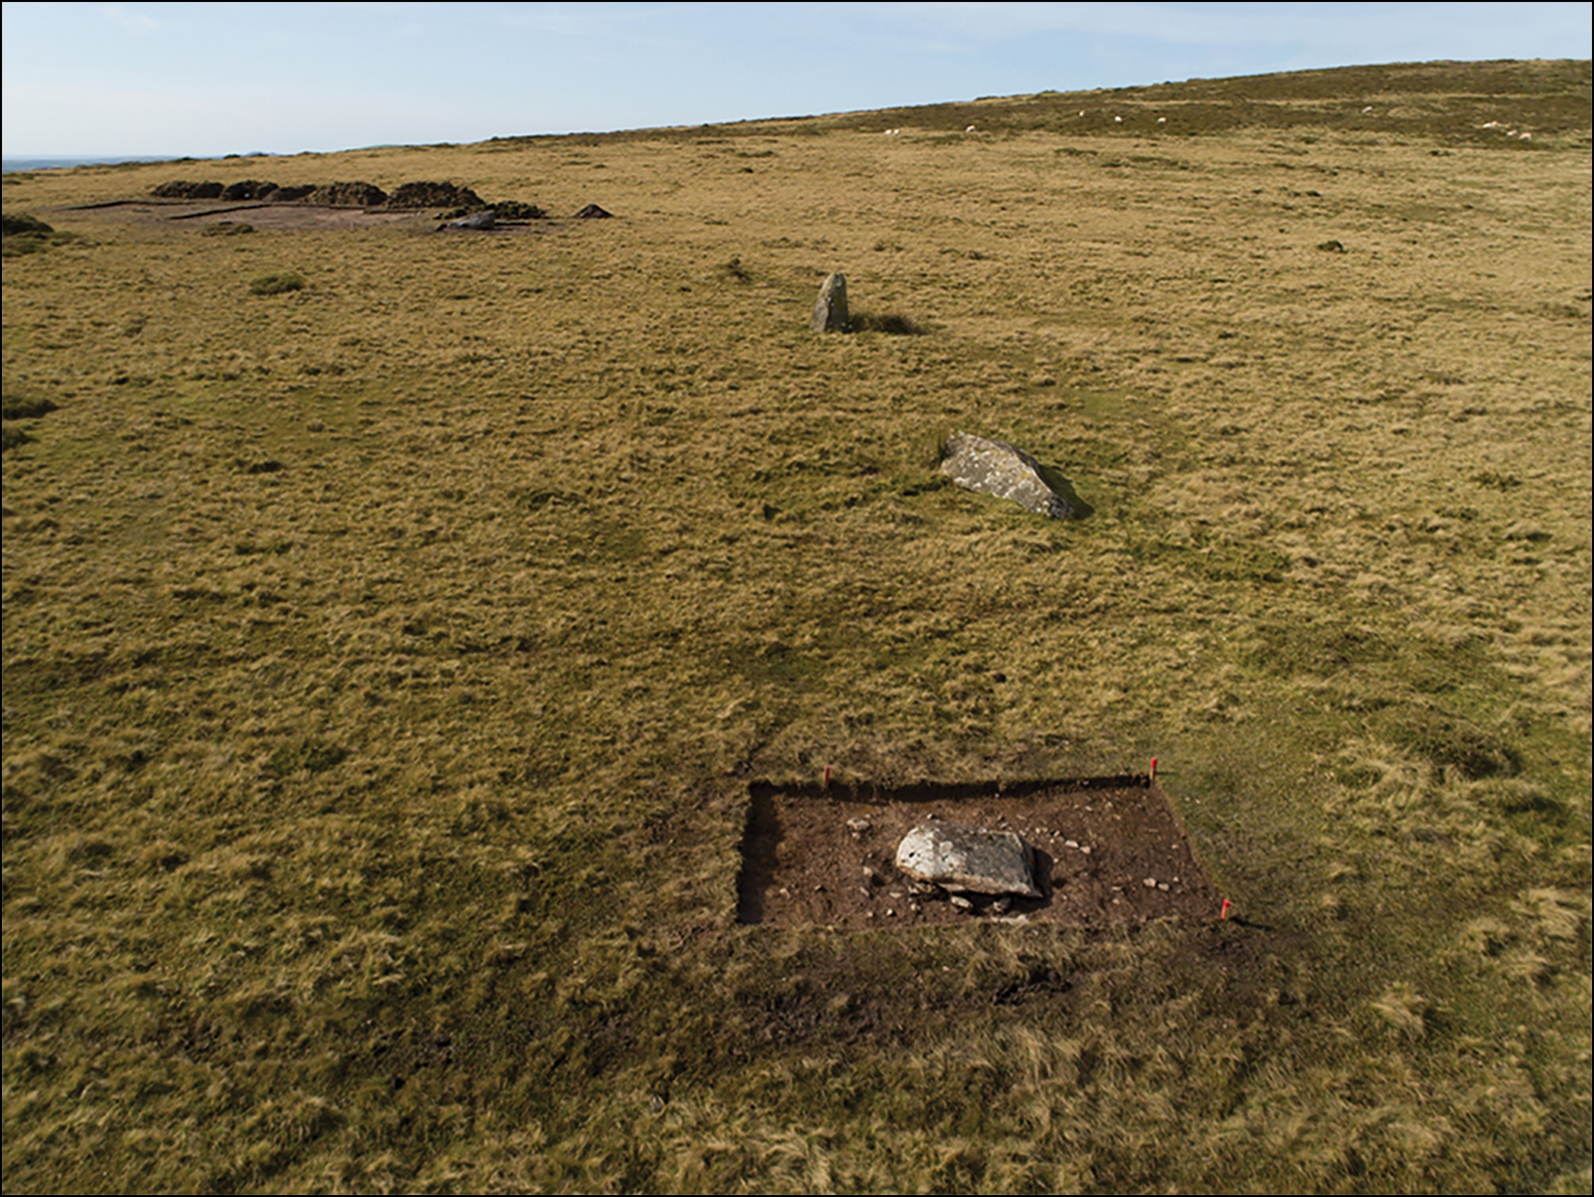 Named Waun Mawn, it's one of the biggest stone circles ever found in Britain, with a diameter matching that of Stonehenge